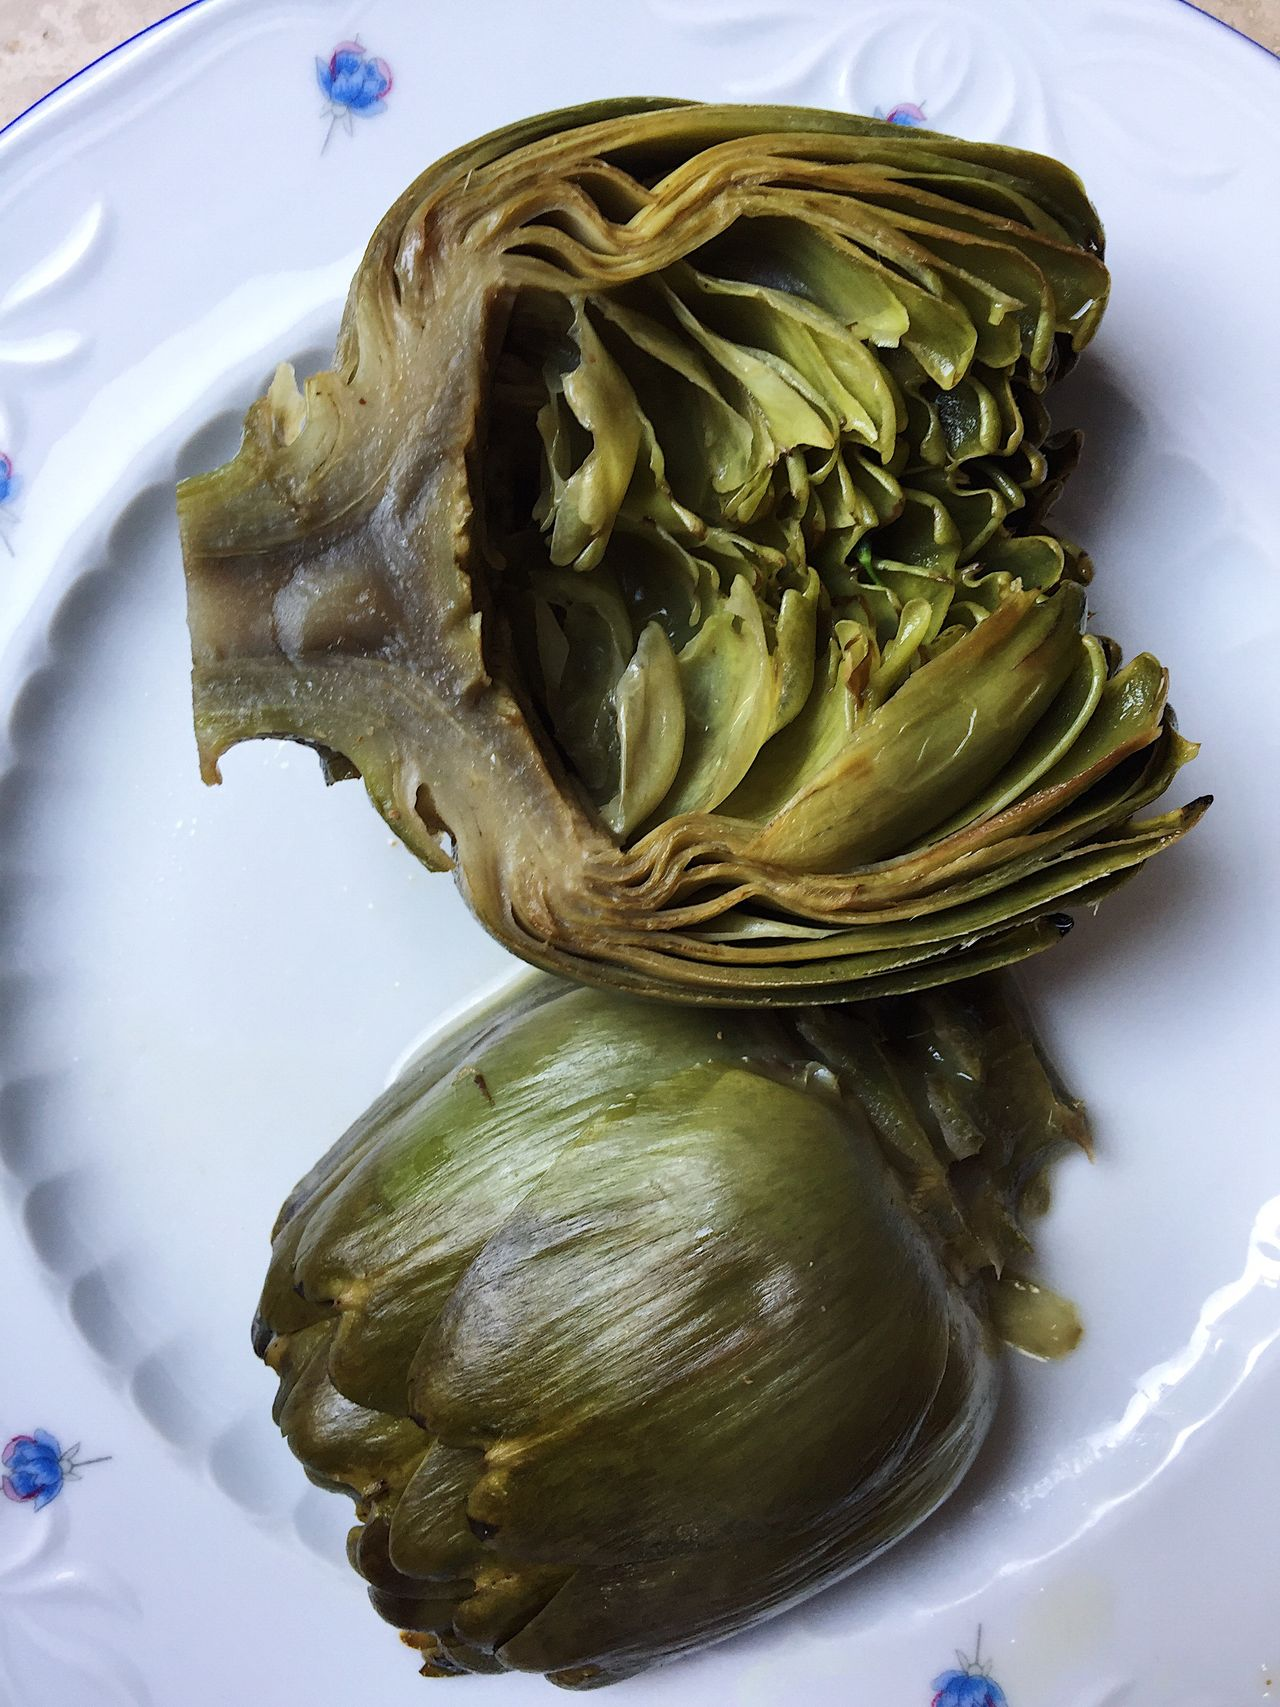 Cooked artichoke is ready to be eaten as a part of a healthy lifestile diet Artichoke Artichokes Boiled Cooked Cooking Diet Food Food Fried Green Growth Healthy Healthy Eating Healthy Lifestyle Home Cooked Home Cooking Leaf Nature Peal Plate Ready To Cook Ready To Eat Vegetable Vegetarian Food